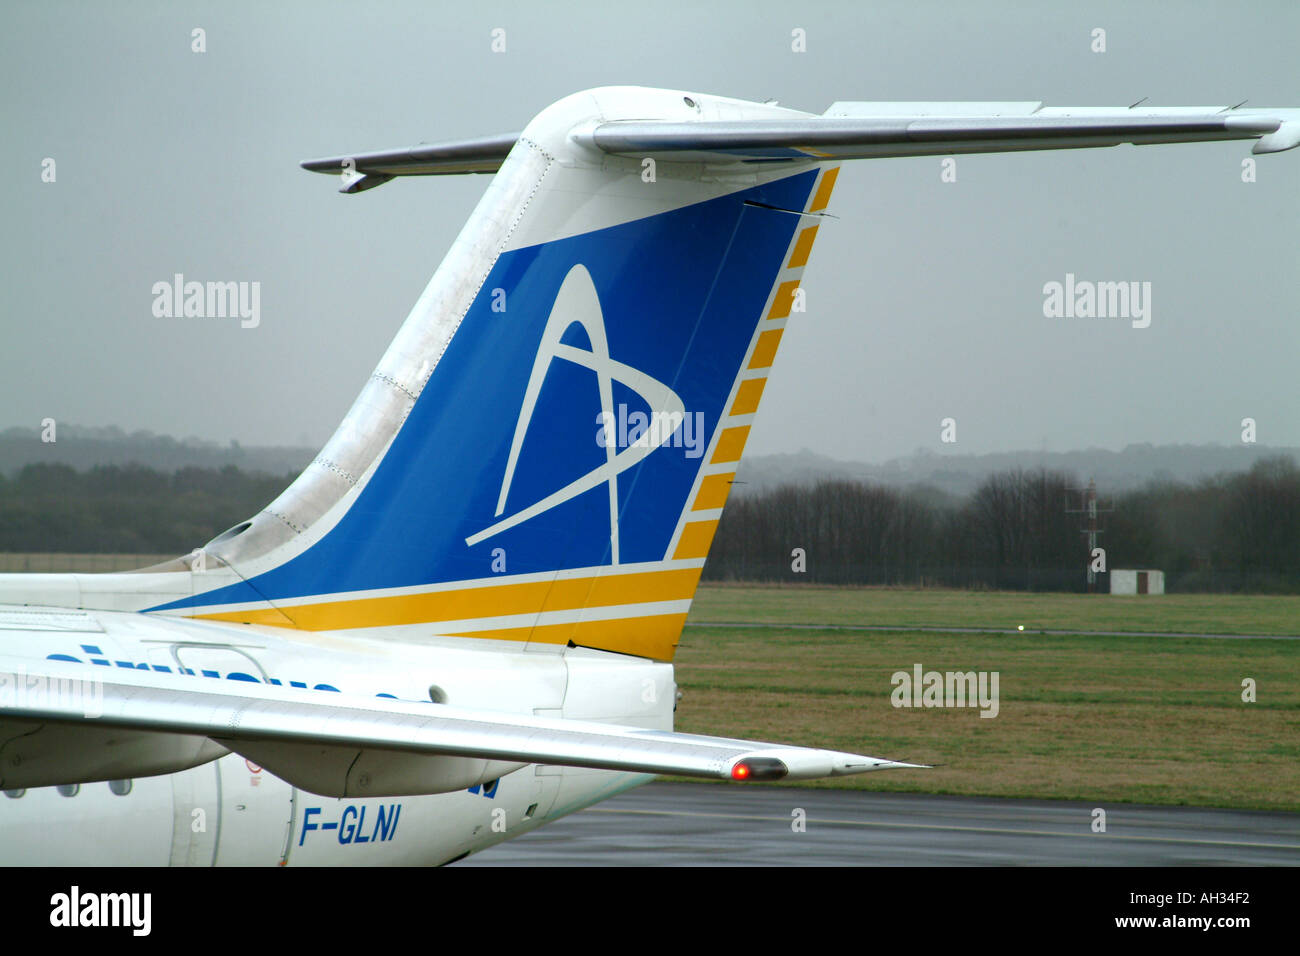 Axis Airways Tailplane Logo on BAc146 200 aircraft Marseilles Based Passenger Cargo Airline France Europe - Stock Image